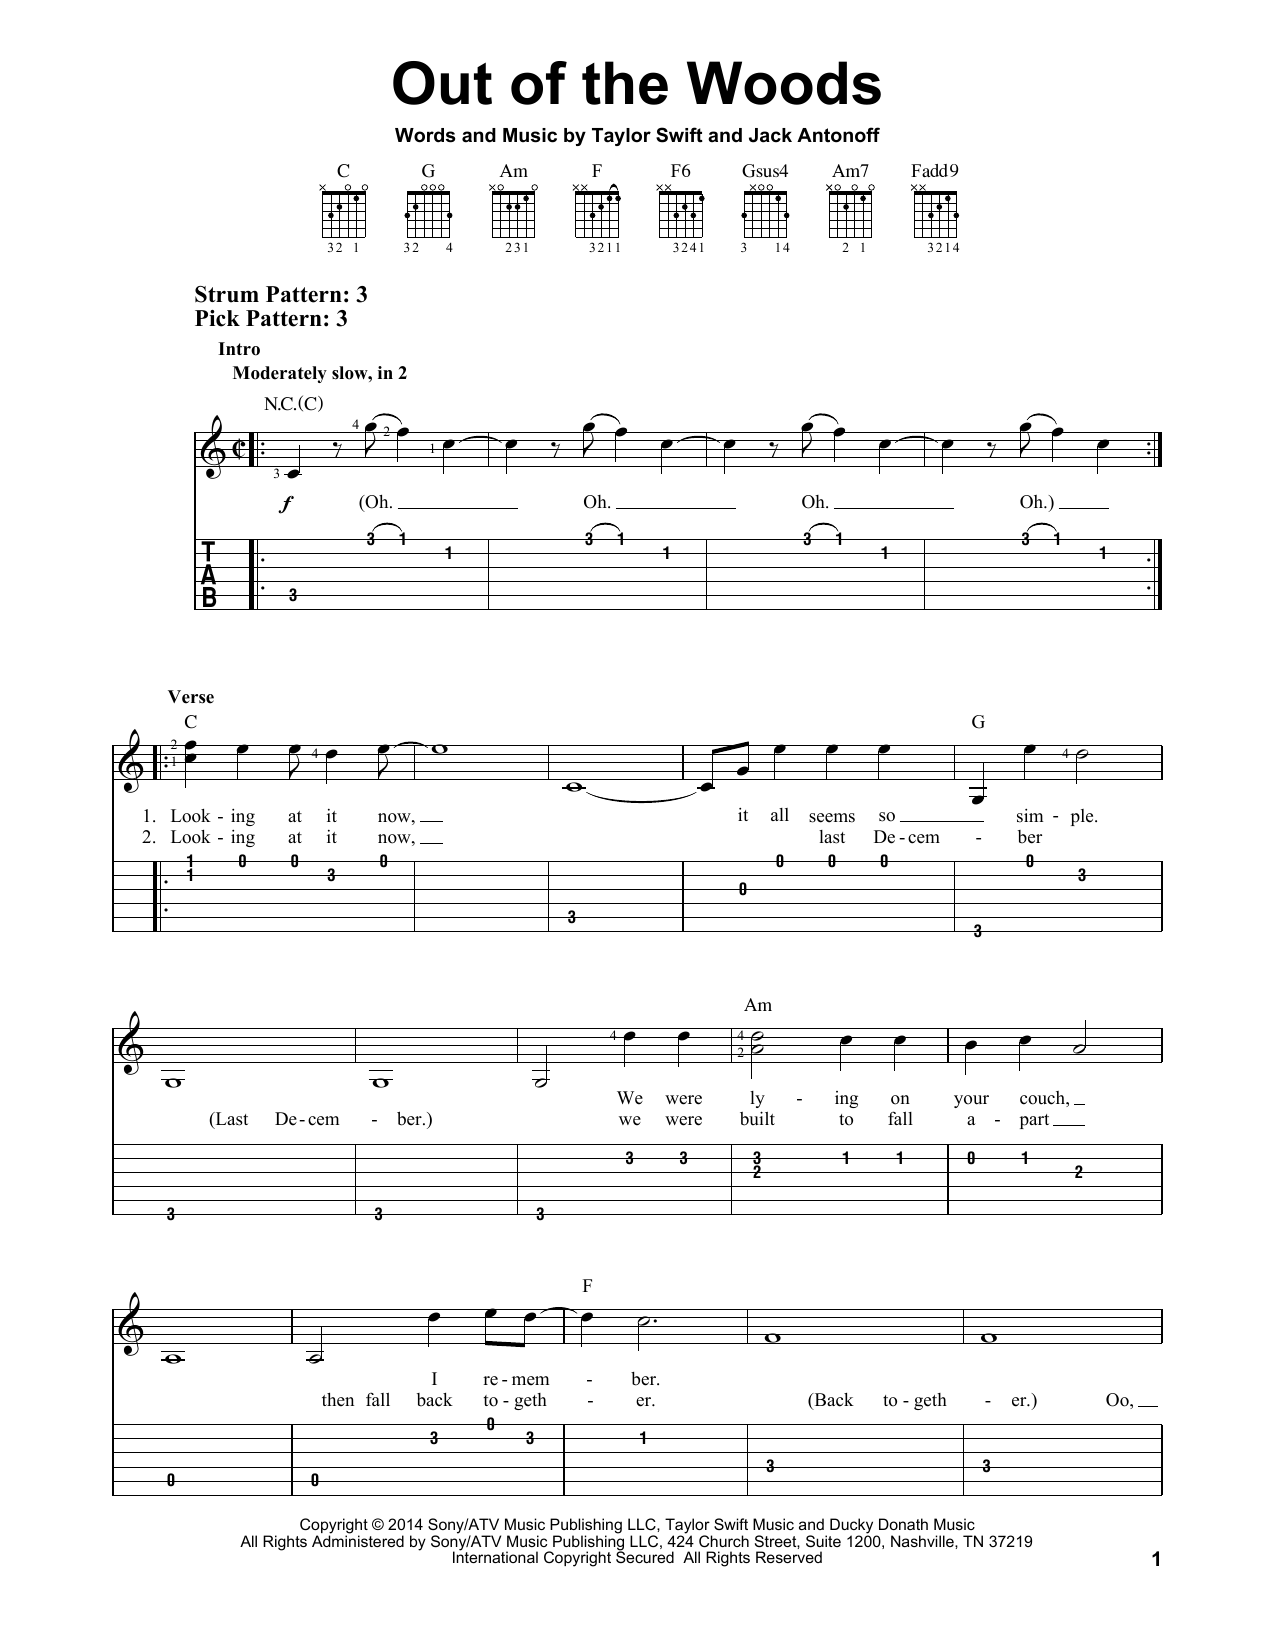 Taylor Swift Out Of The Woods Sheet Music Pdf Notes Chords Pop Score Guitar Tab Download Printable Sku 156397